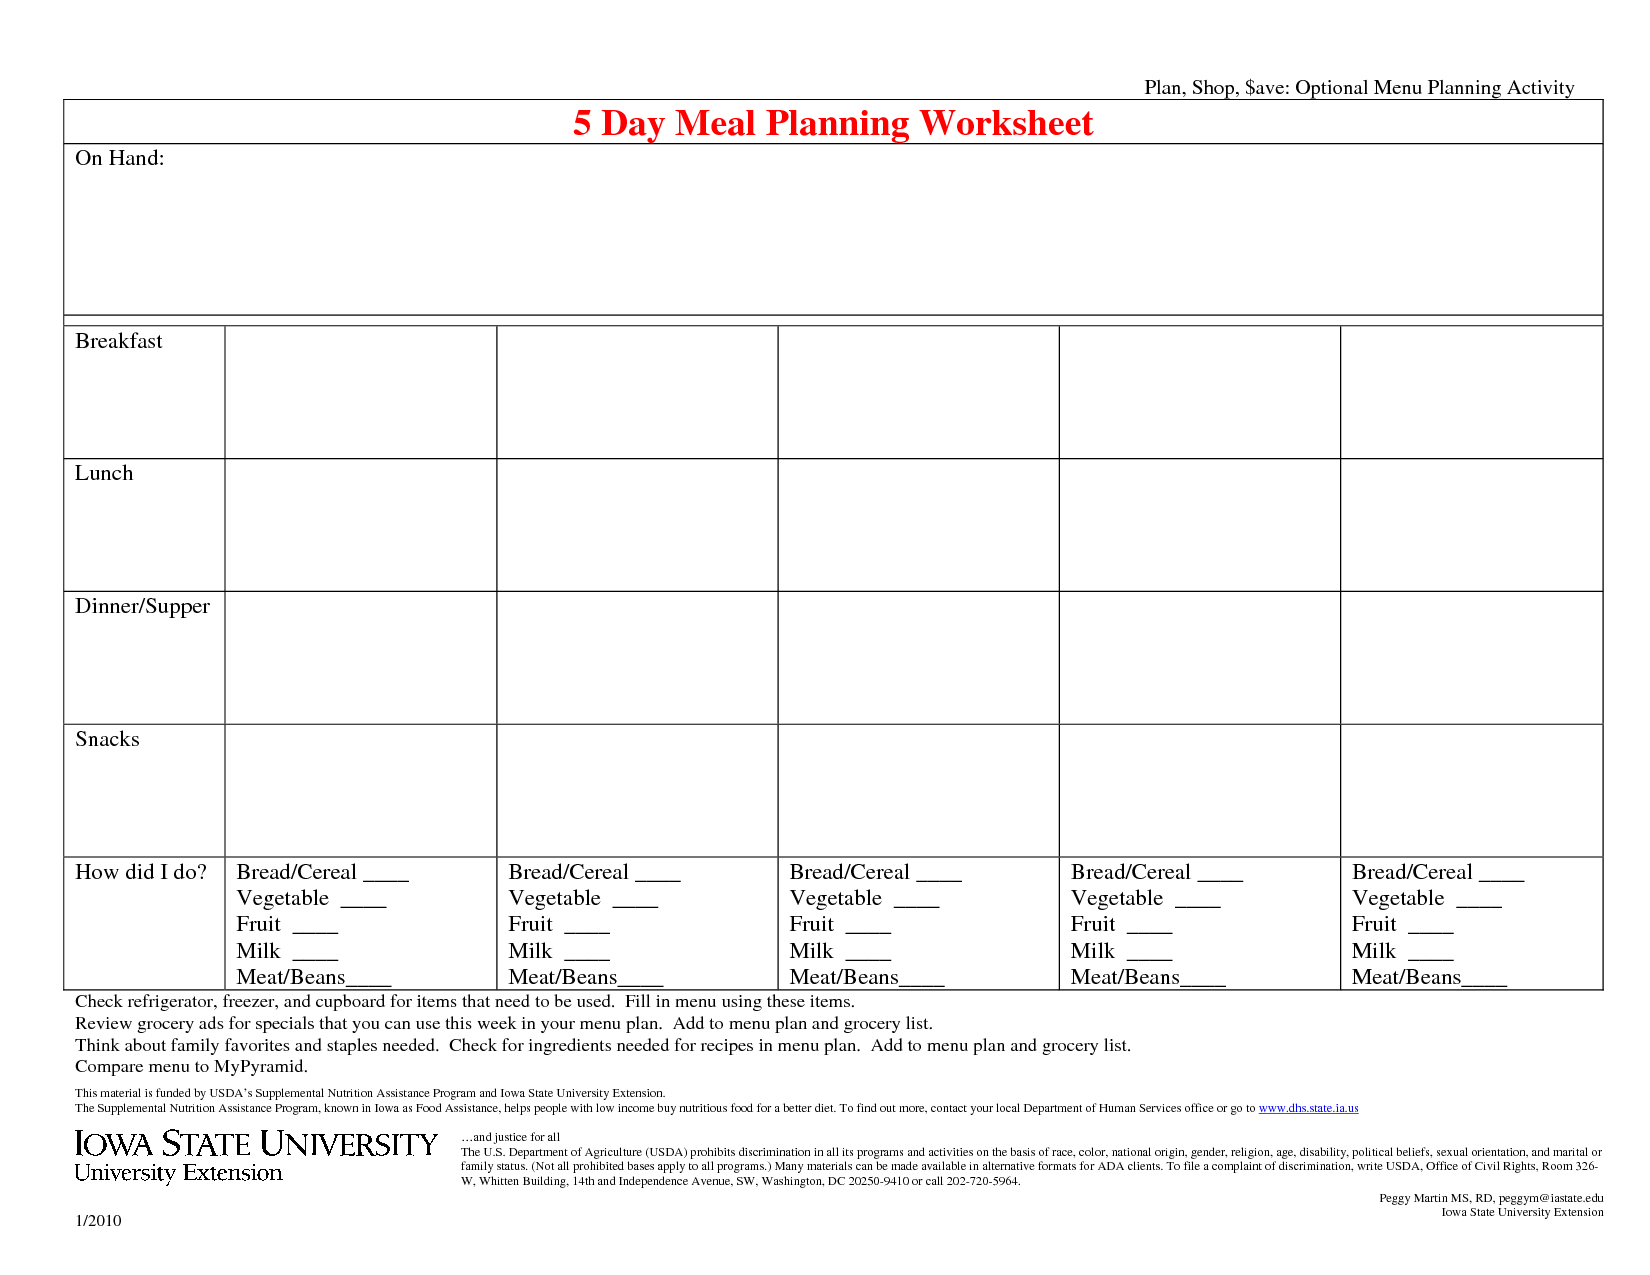 16 Best Images Of A Healthy Meal Plan Worksheet